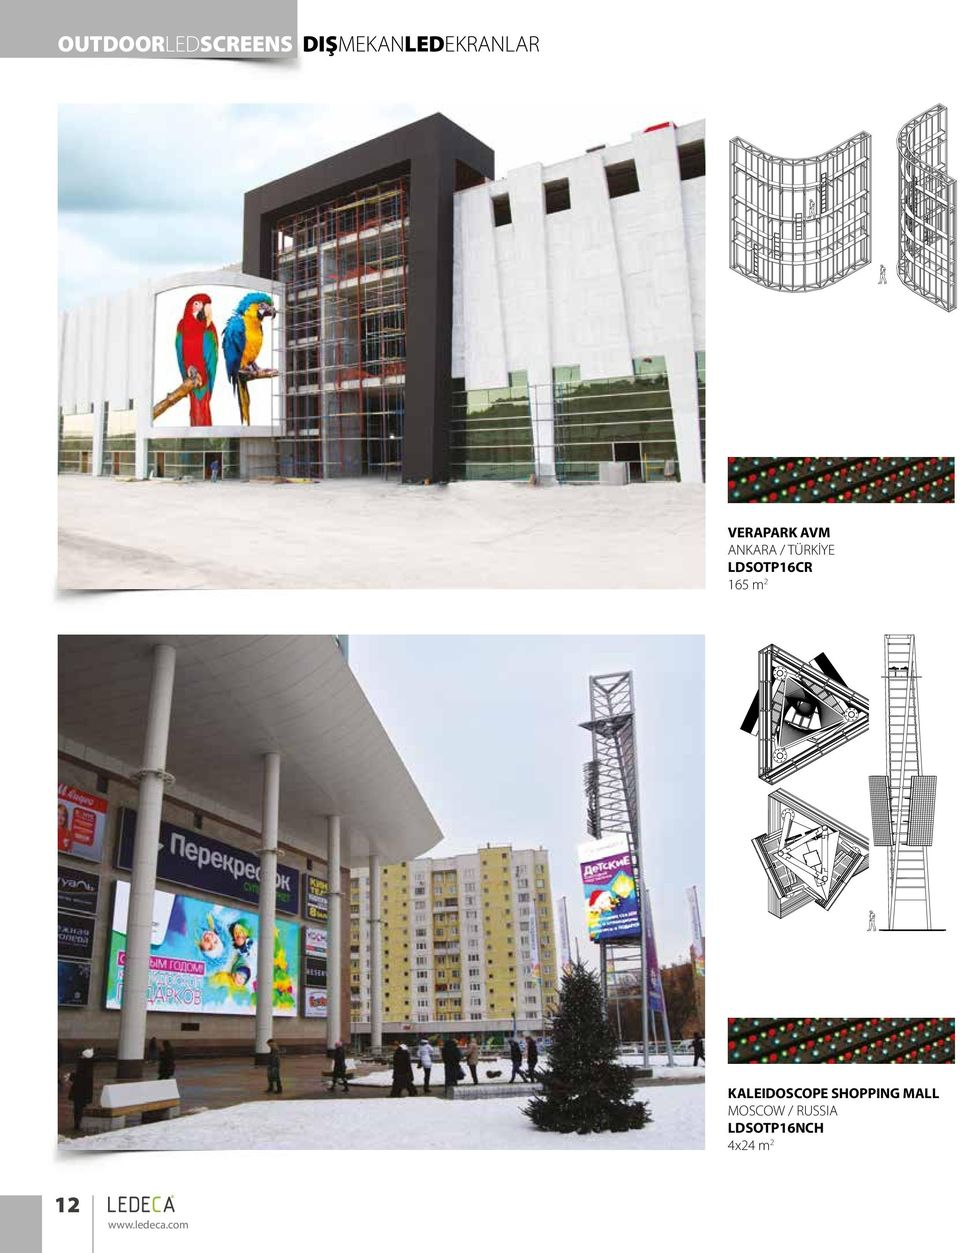 165 m 2 KALEIDOSCOPE SHOPPING MALL MOSCOW